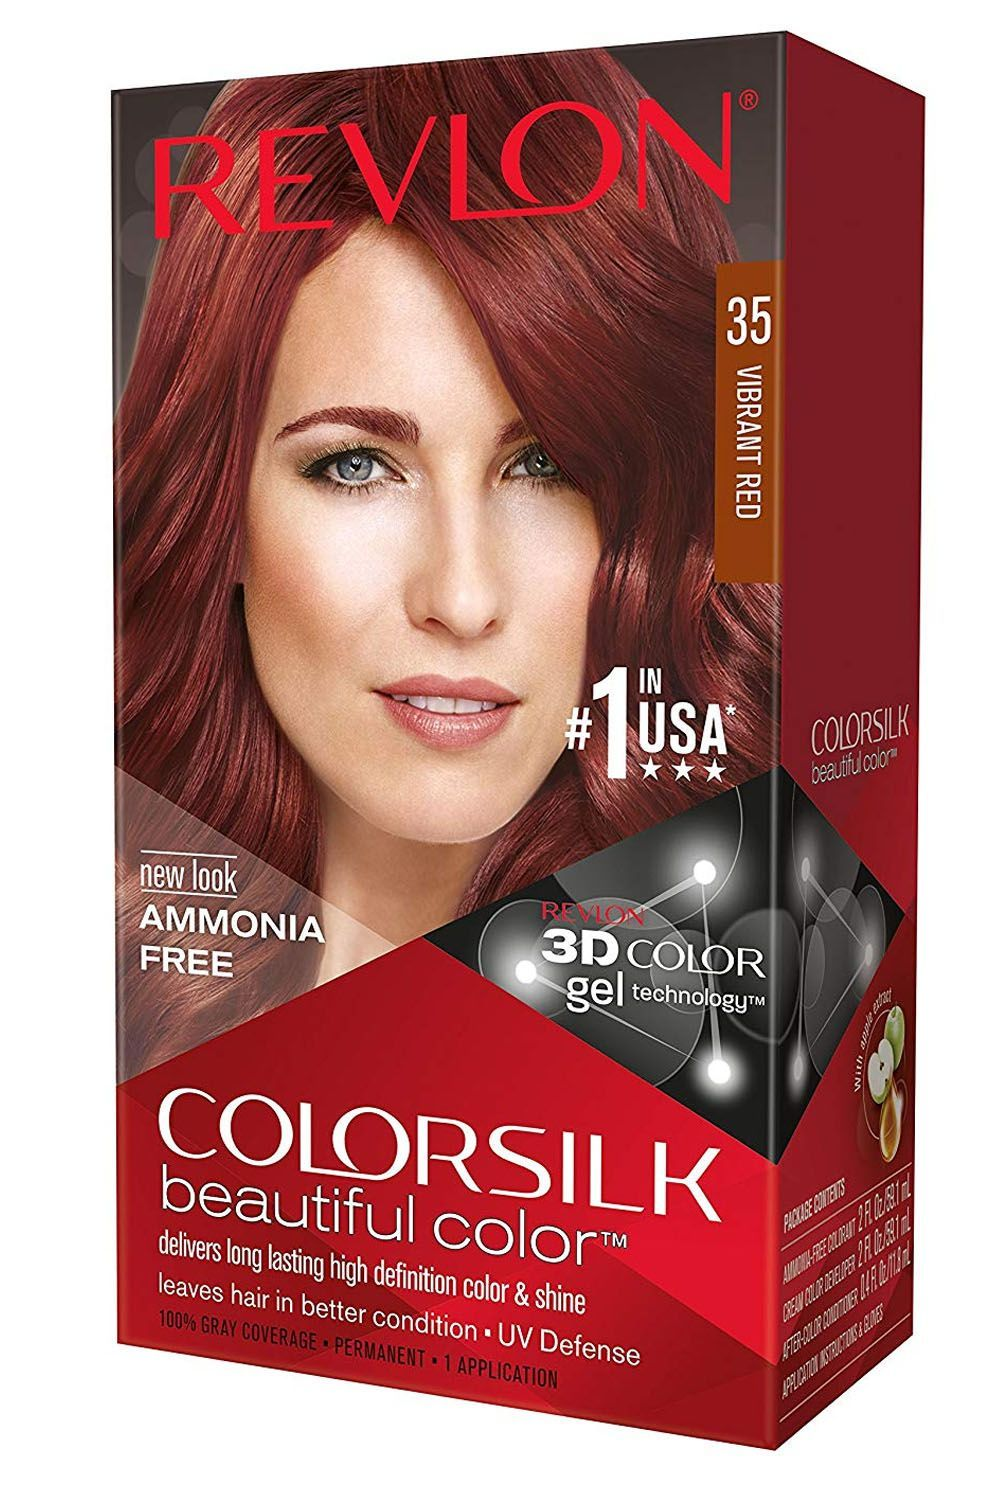 15 Best At Home Hair Colors And Dyes Of 2021 Drugstore Hair Dyes